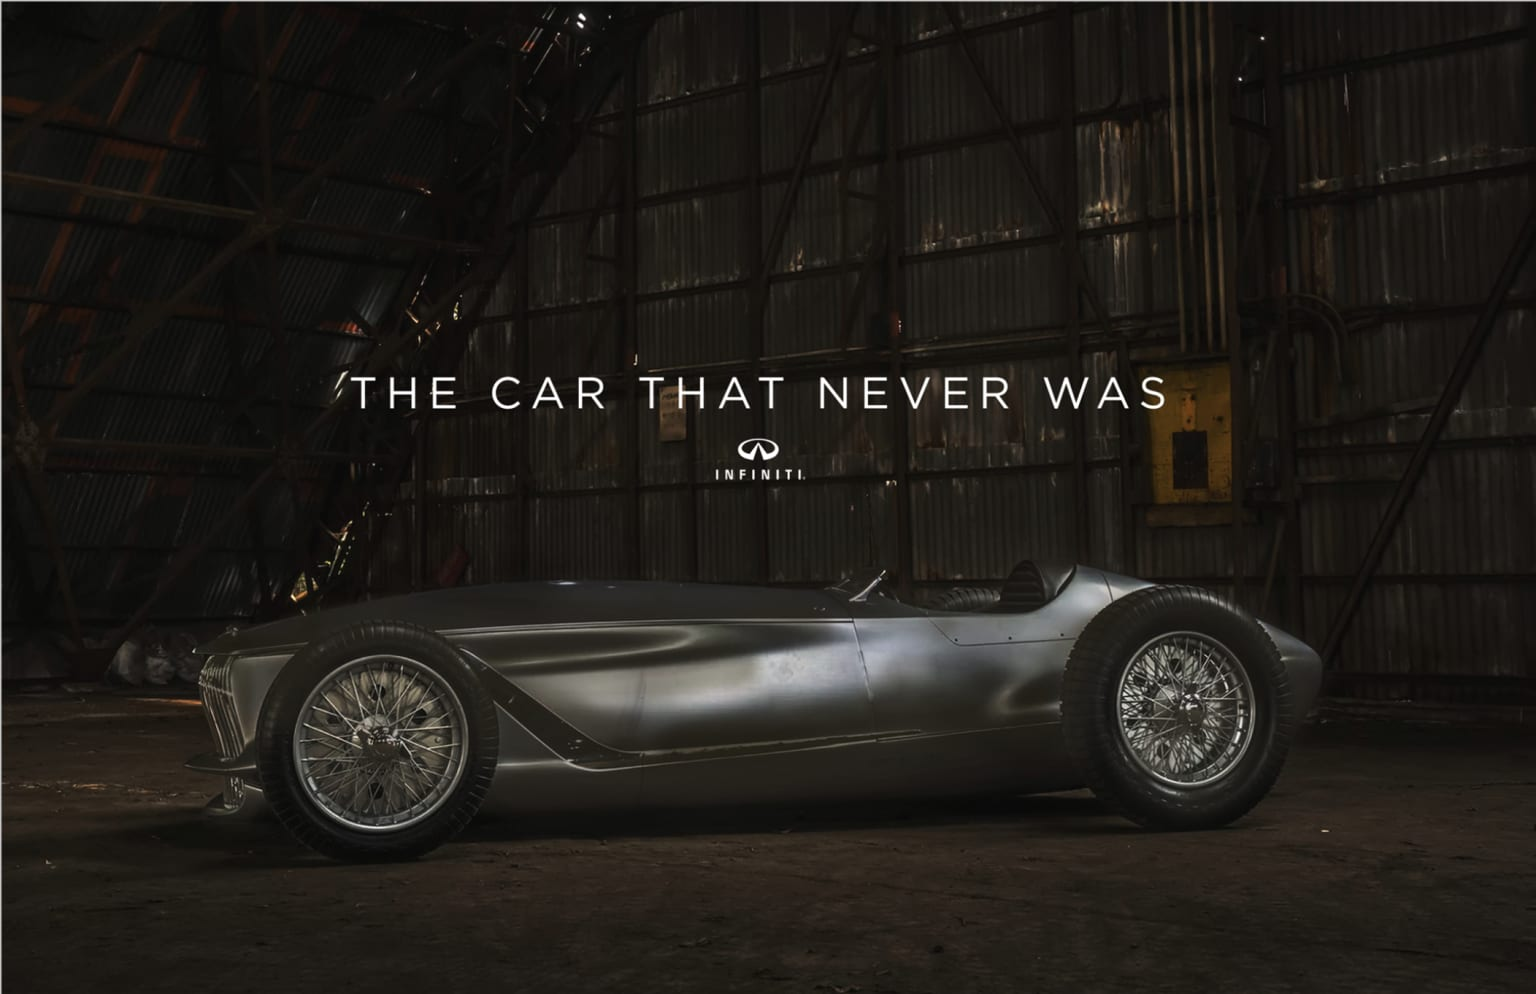 Infiniti - The Car that Never Was